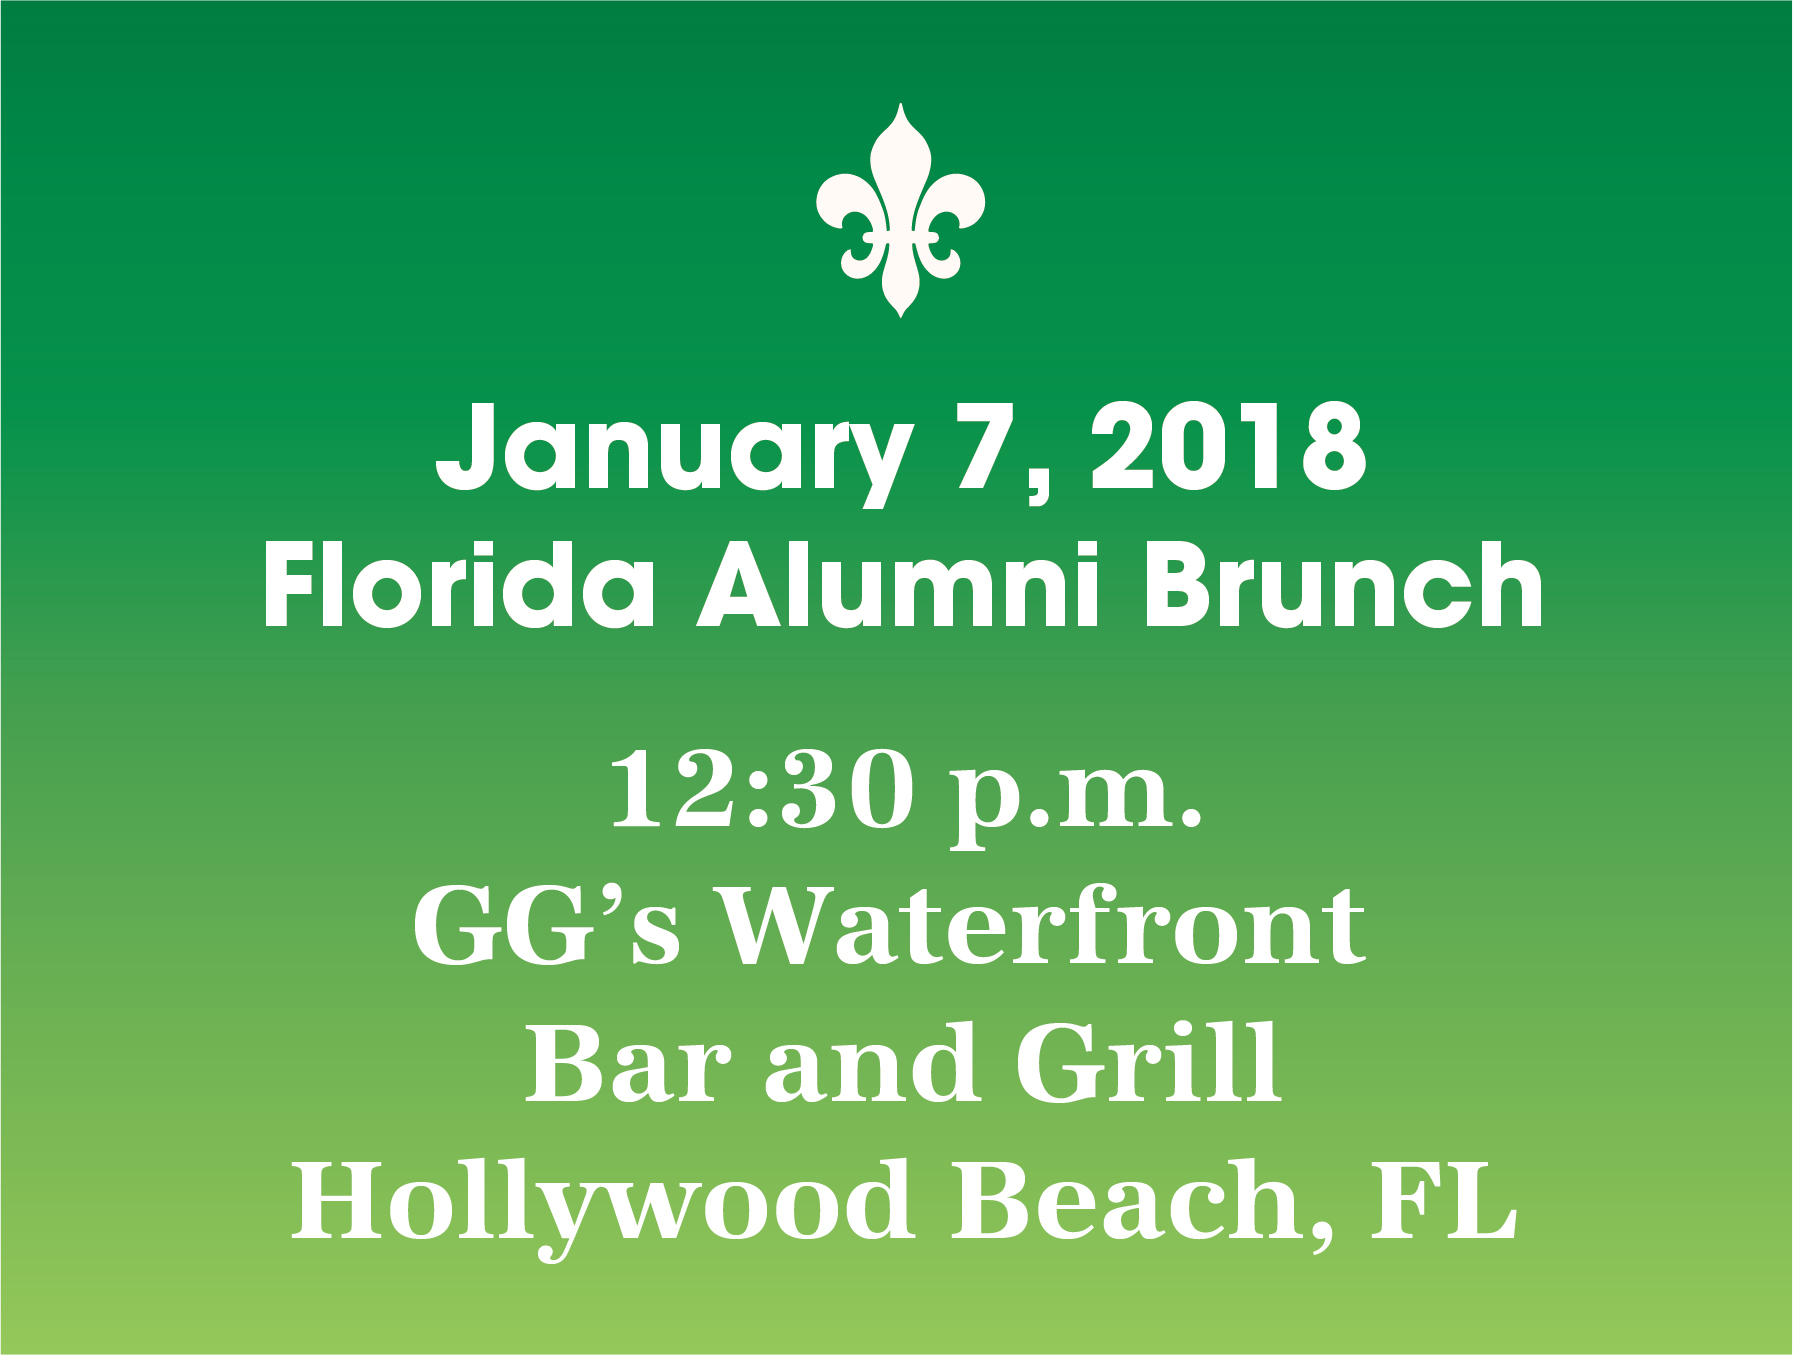 Florida Alumni Brunch